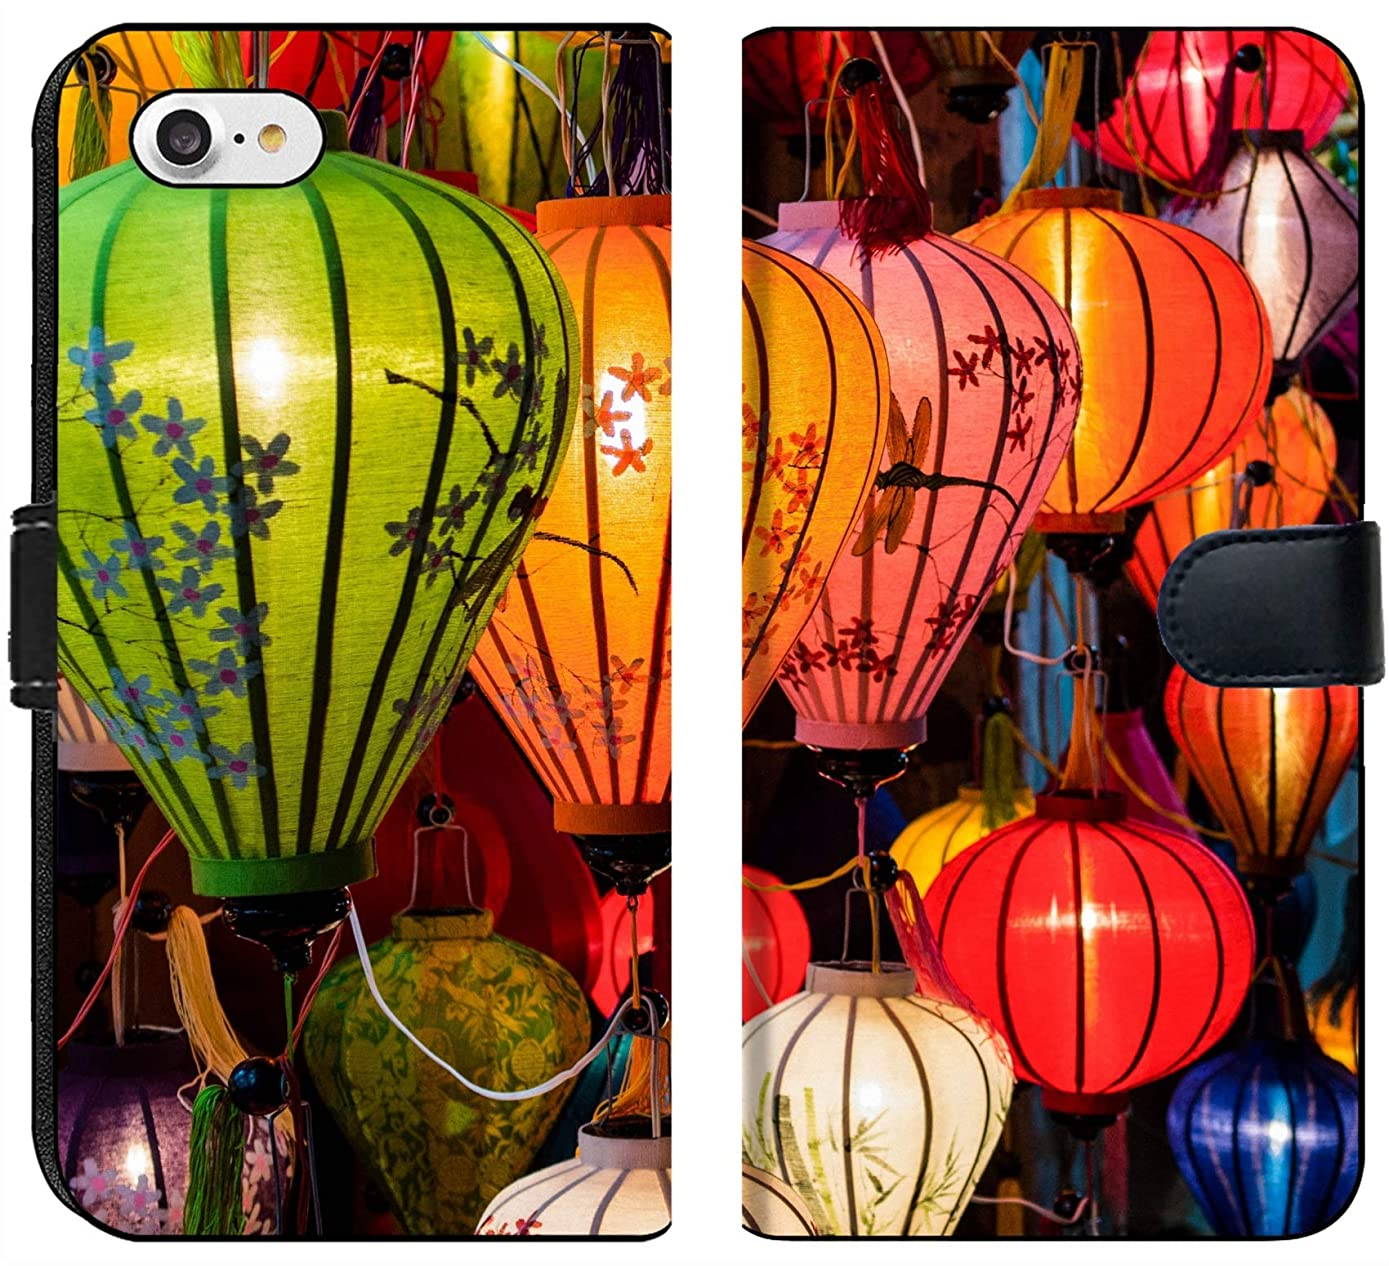 Apple iPhone 7 and iPhone 8 Flip Fabric Wallet Case Image ID: 31089698 Traditional Lamps in Old Town Hoi an Central Vietnam